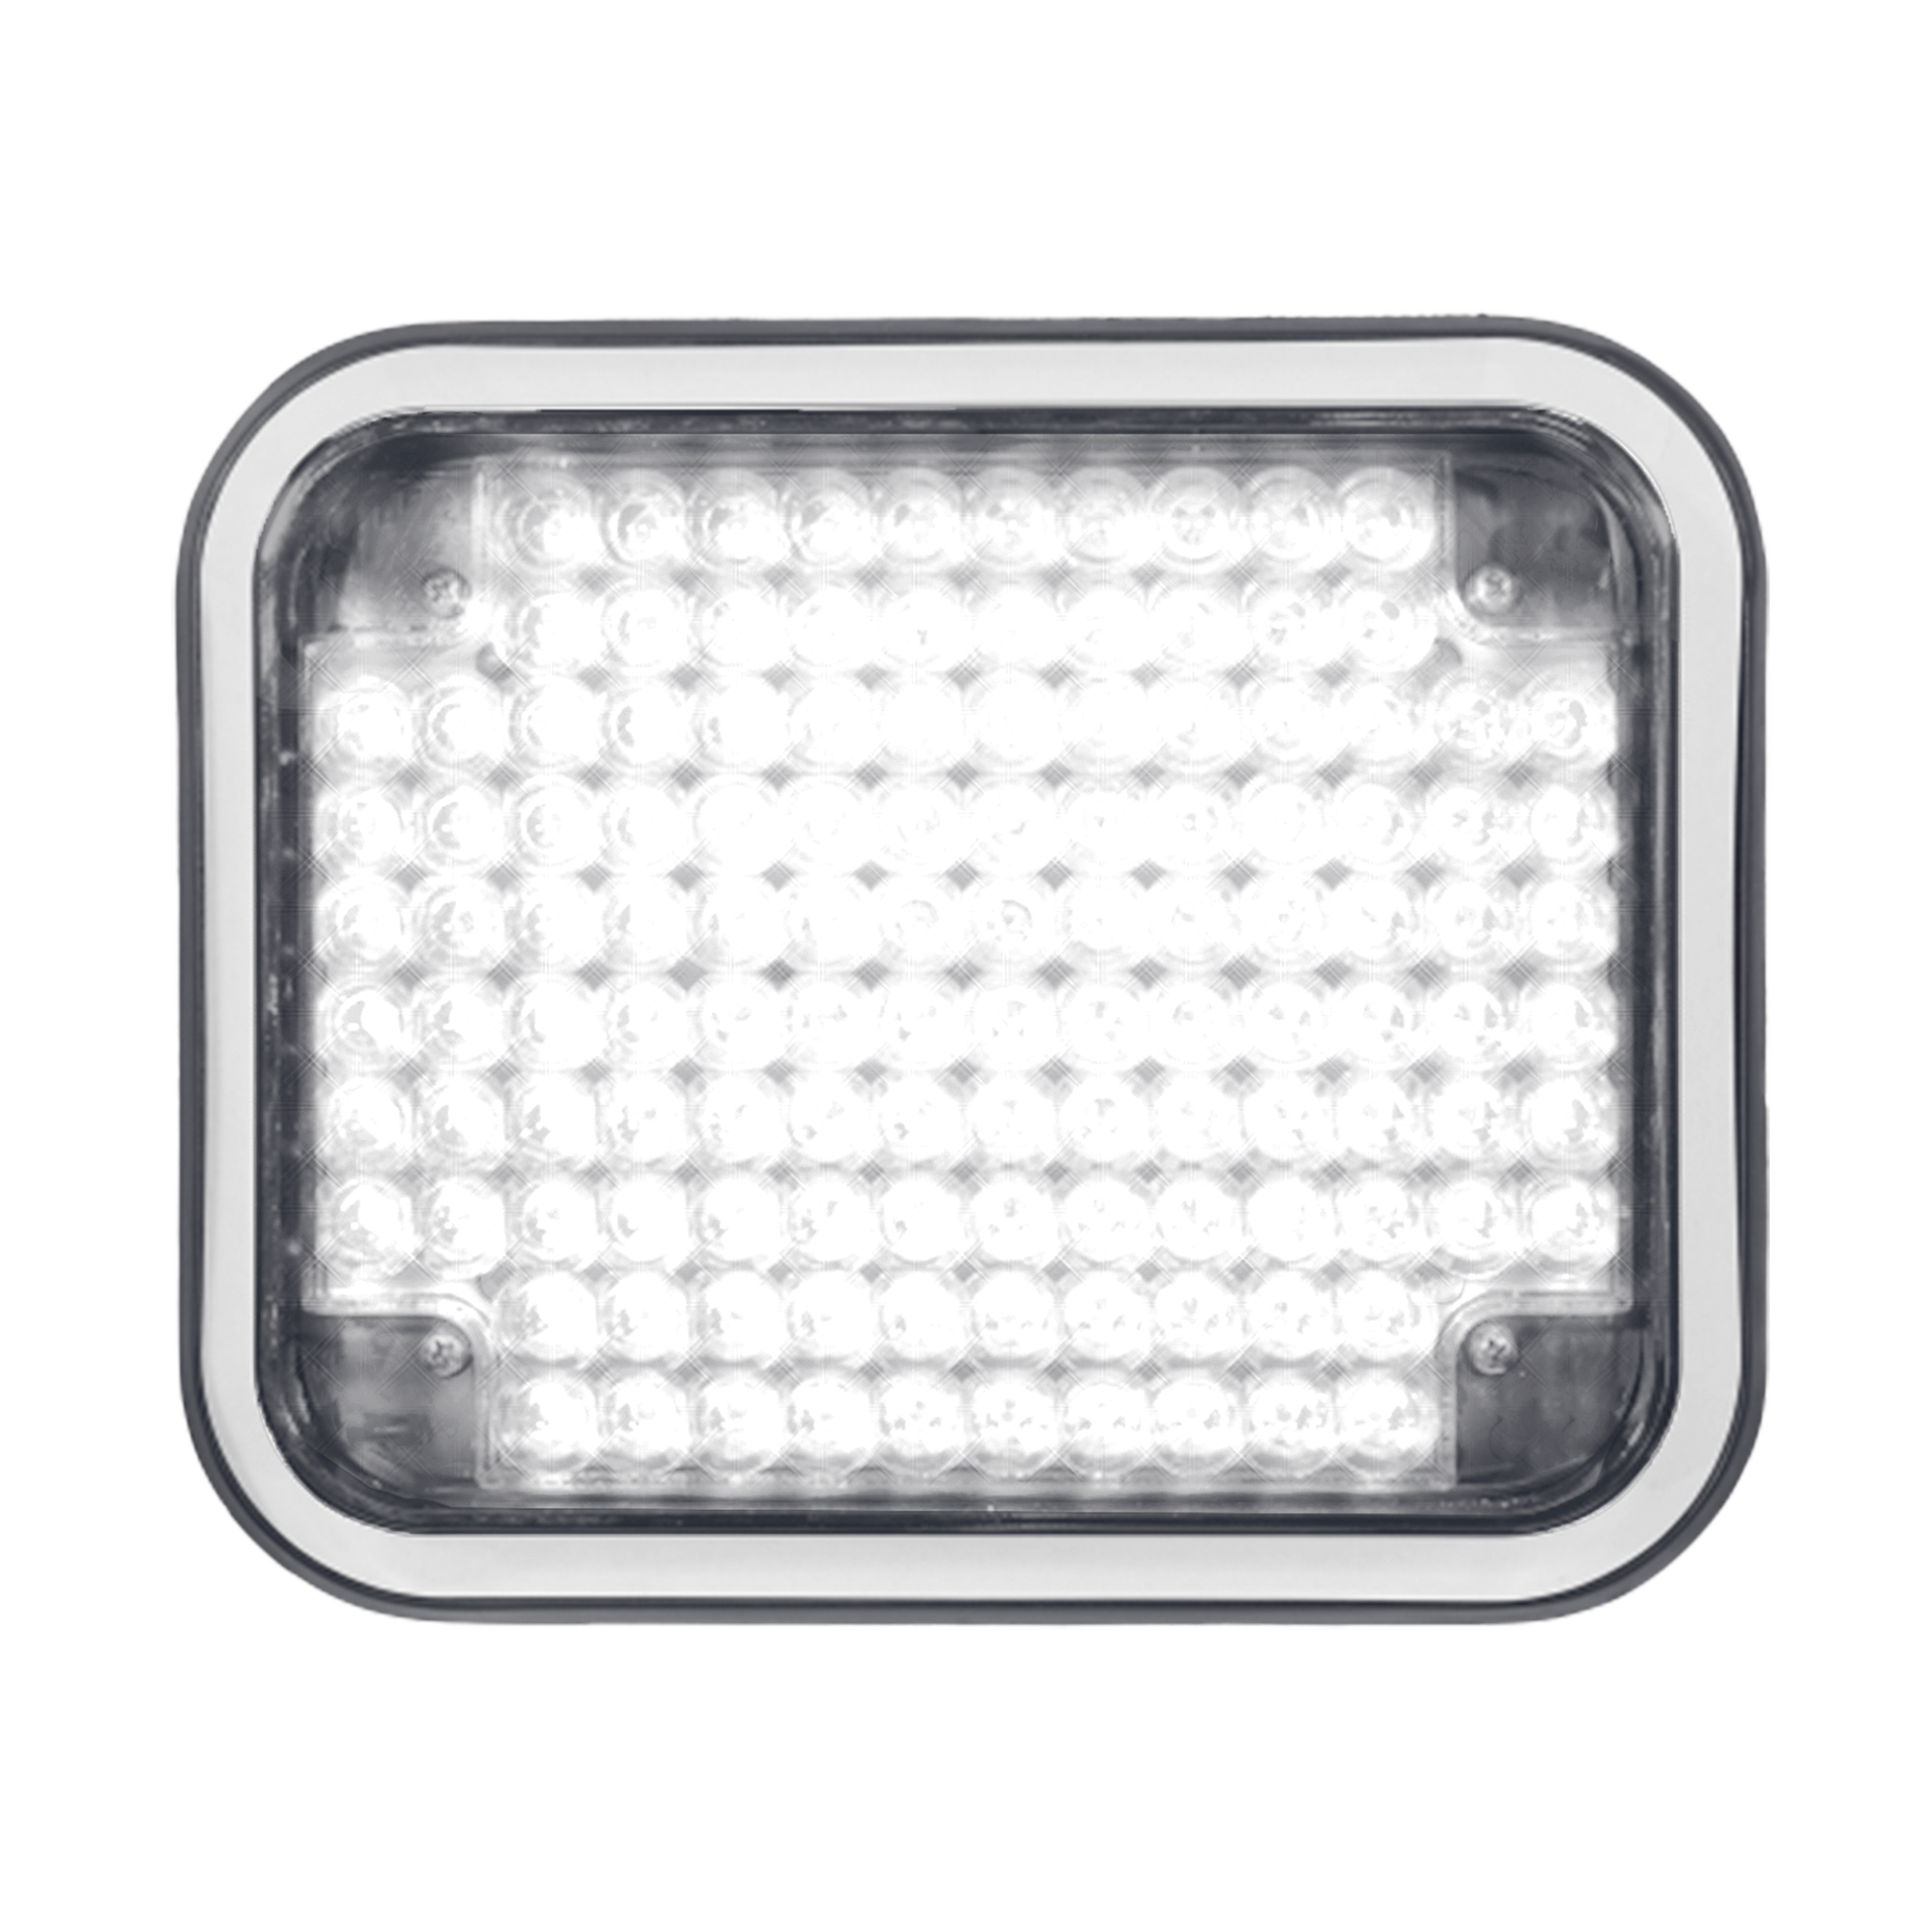 Luz perimetral LED claro 7x9 con bisel color blanco